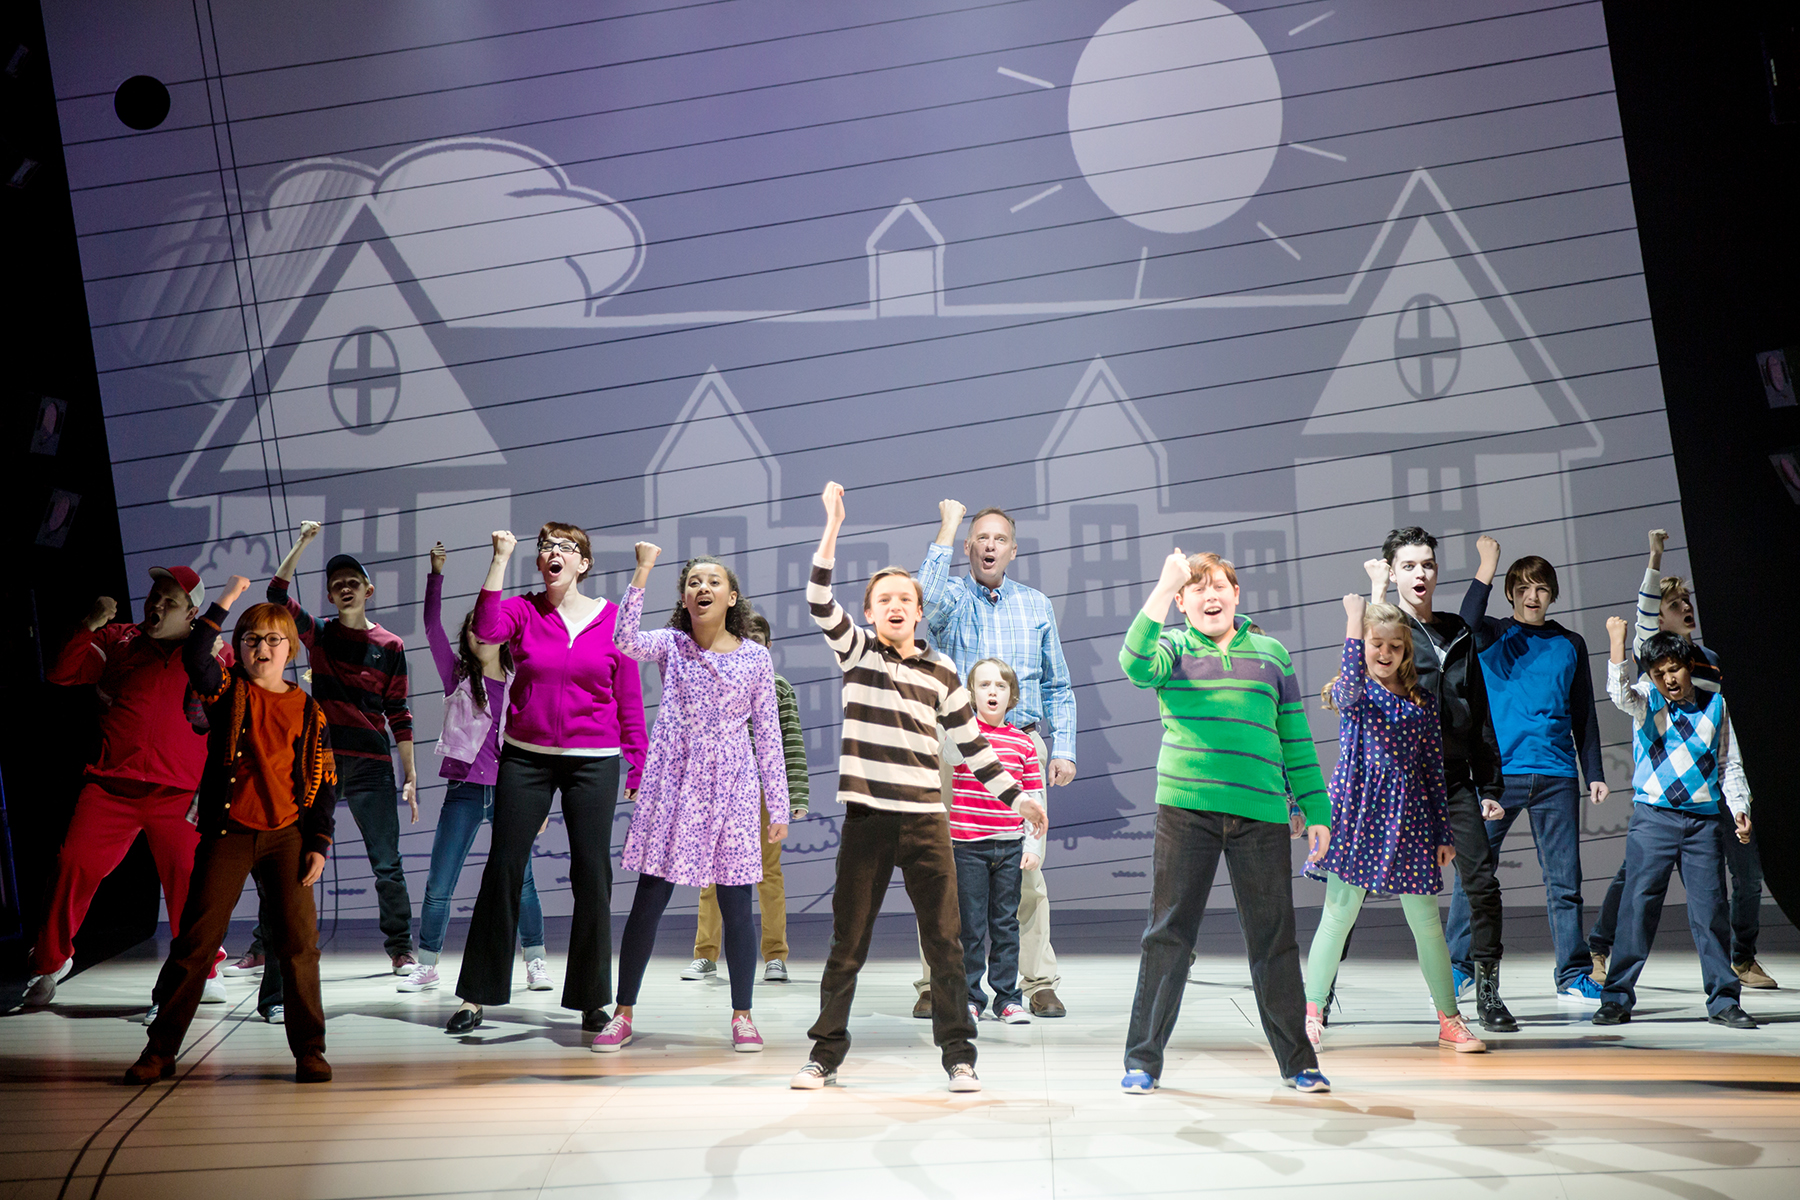 5Q: Diary of a Wimpy Kid the Musical